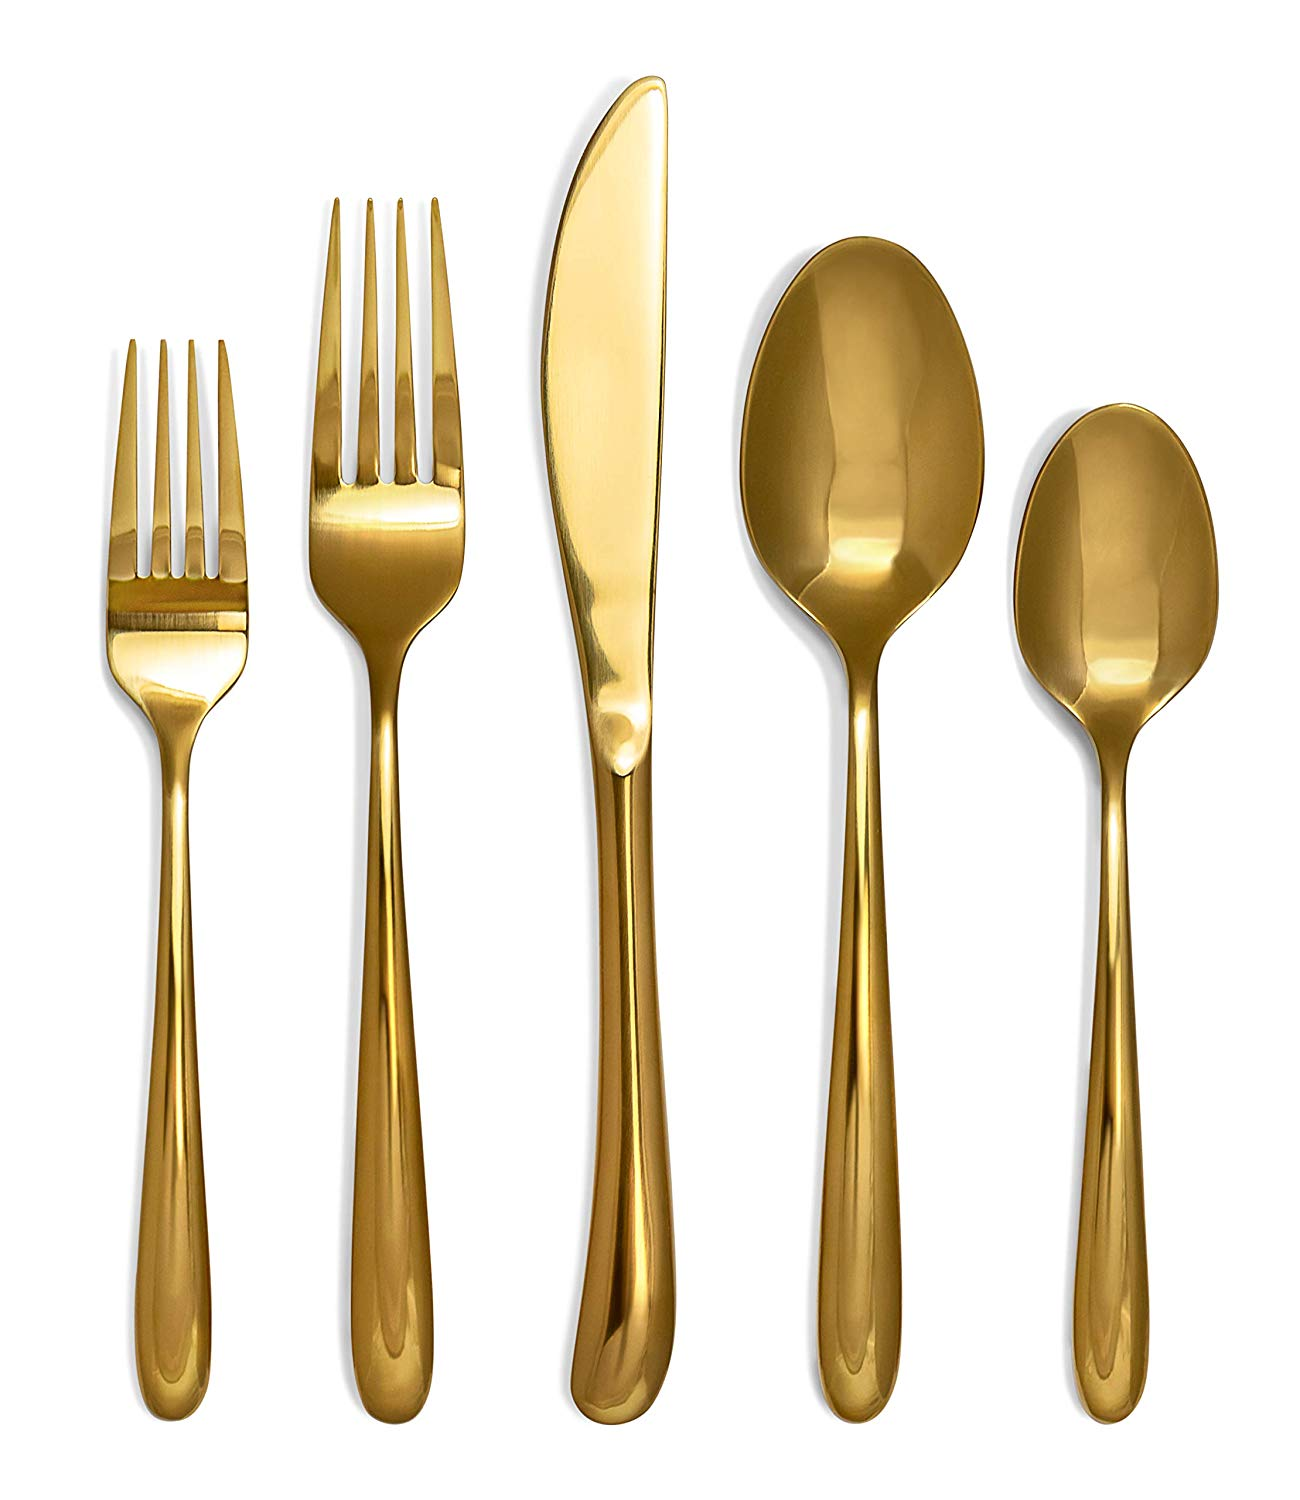 Craft  Kin Flatware Set Hand Forged Gold Silverware Set Classic Heirloom Luxury Gold Flatware  Premium Quality Gold Dipped Pure Stainless Steel Cutlery Set Dinnerware Set 20 pc Set for 4